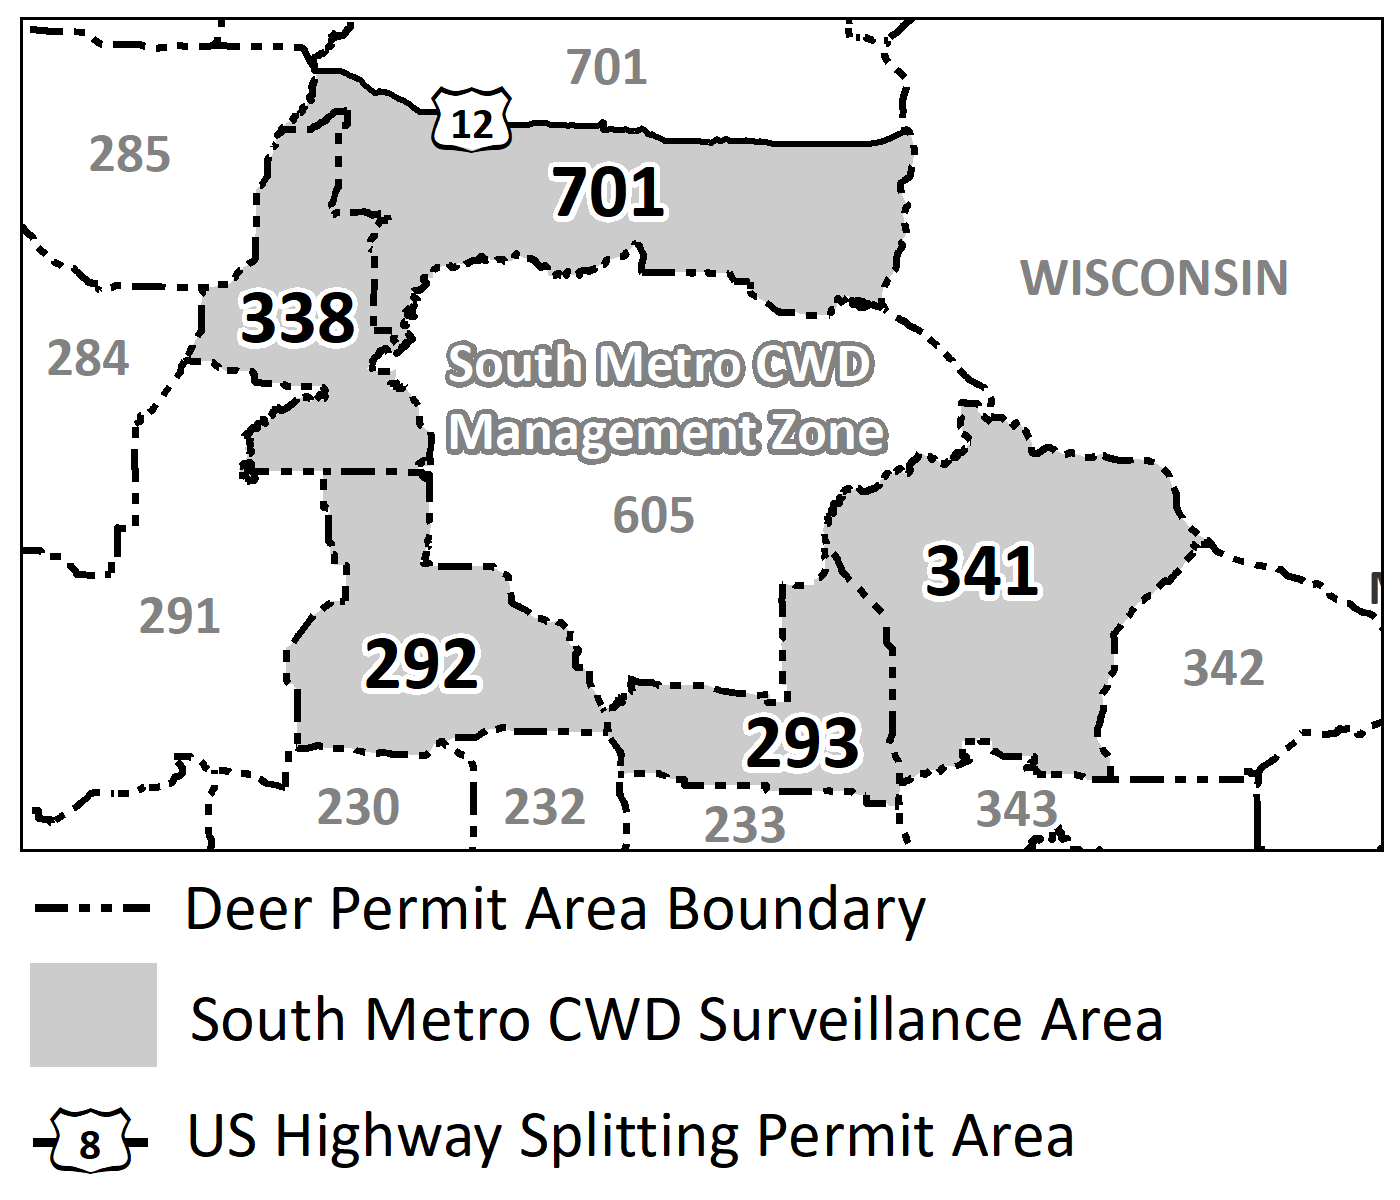 Map highlighting the DPAs included in the south metro CWD surveillance area: DPAs 292, 293, 338, 341 and 701.